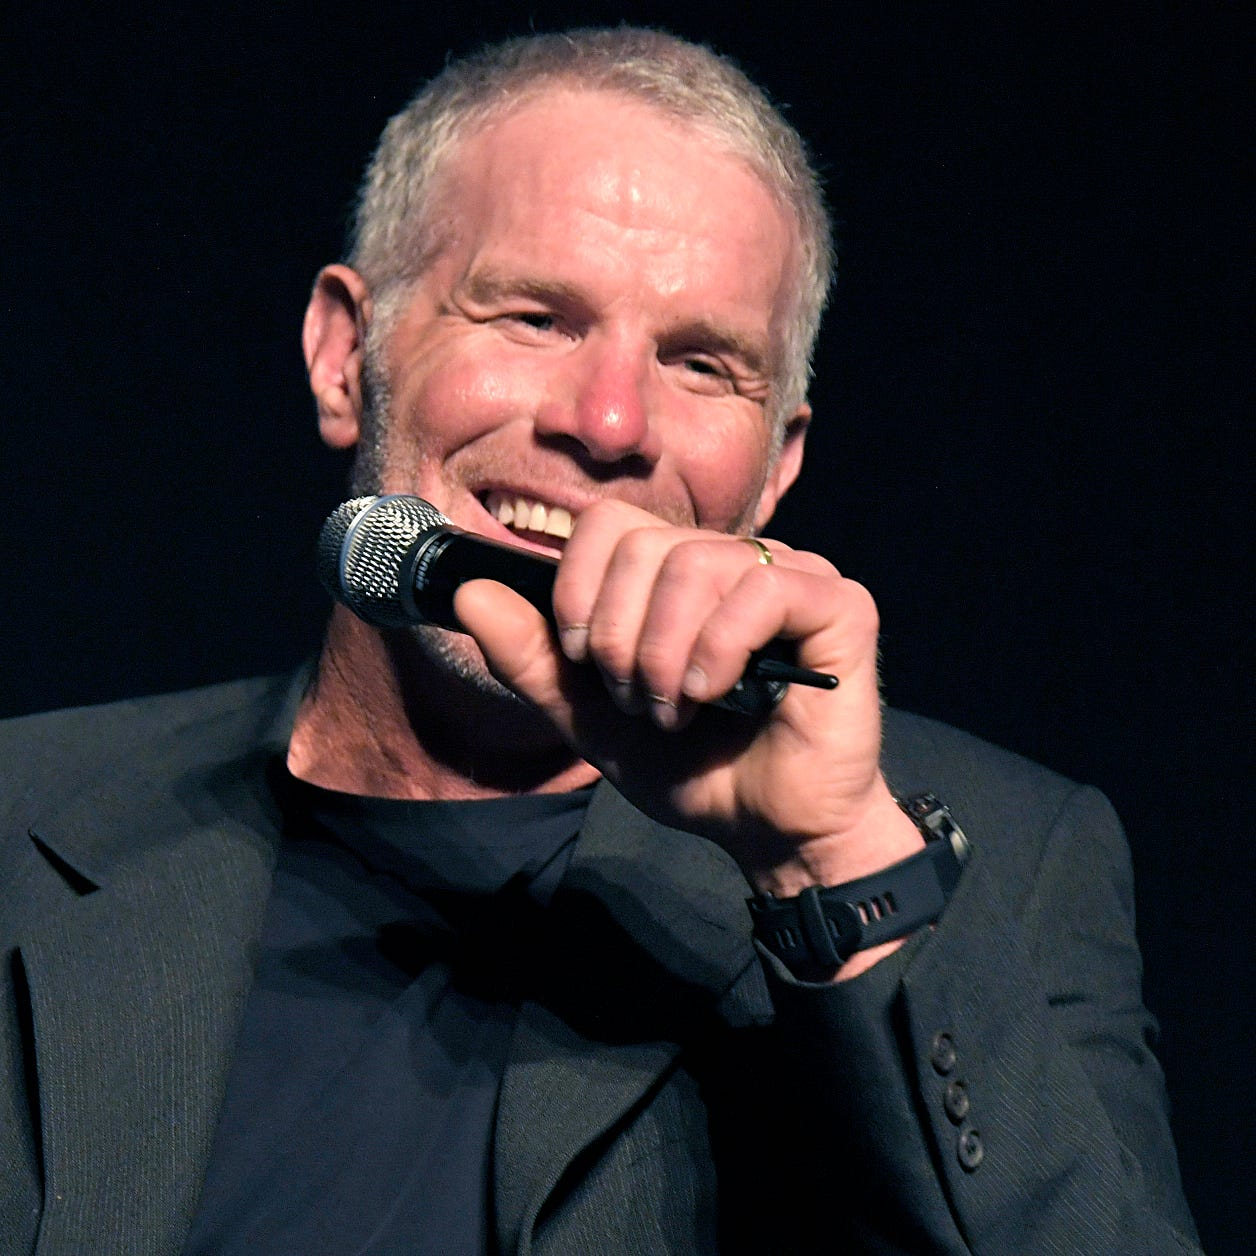 NFL Hall of Famer Brett Favre opens up about family, career at MTCS' Legacy of Light Gala